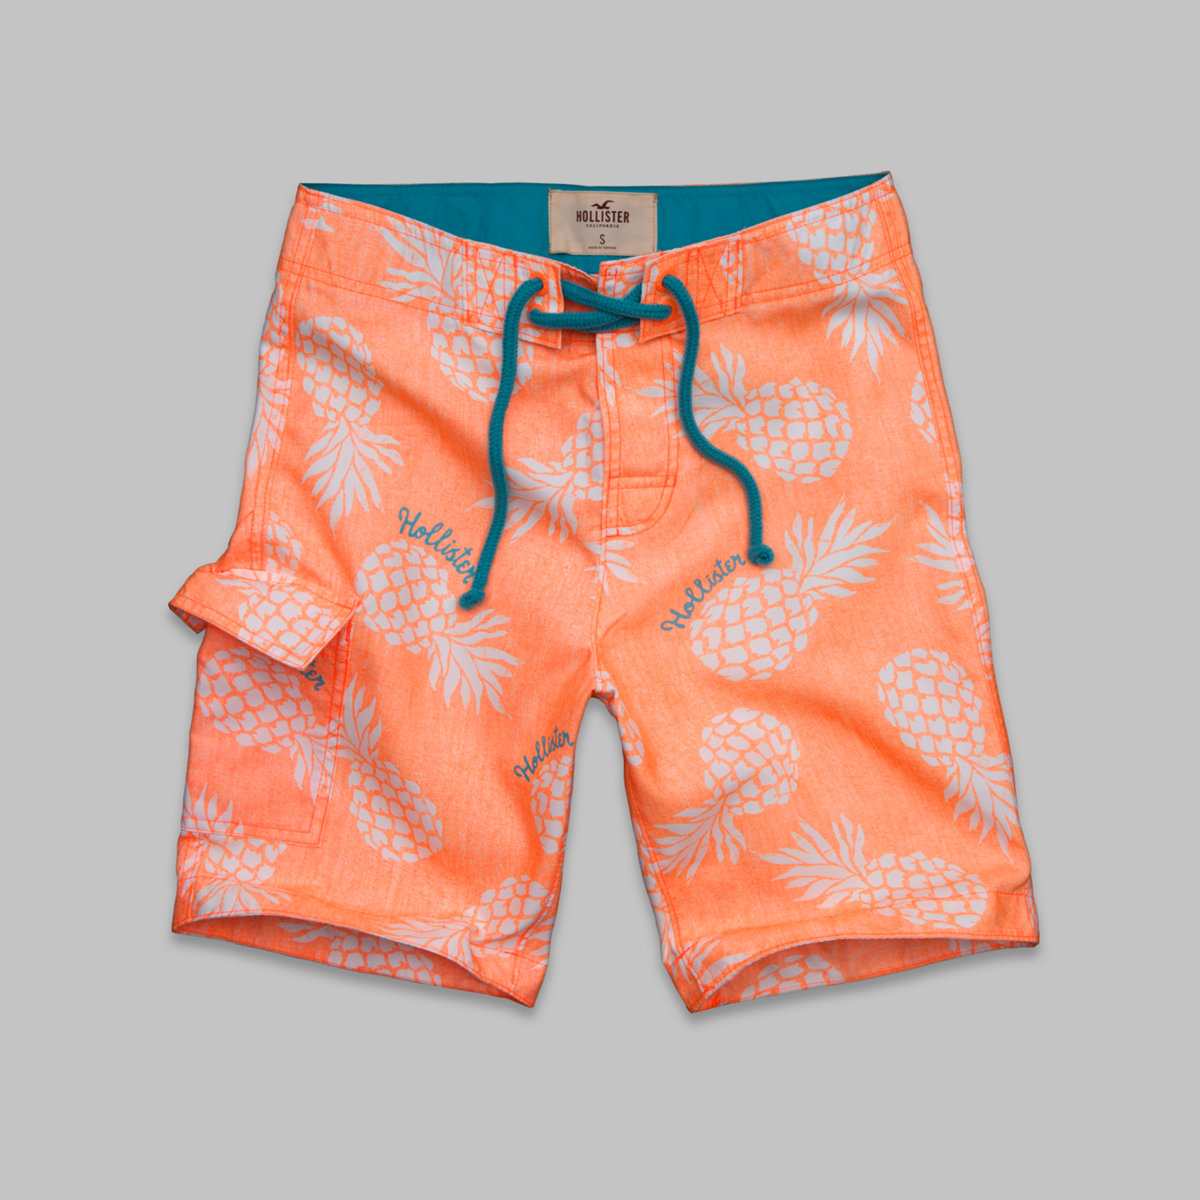 Cabrillo Beach Swim Shorts